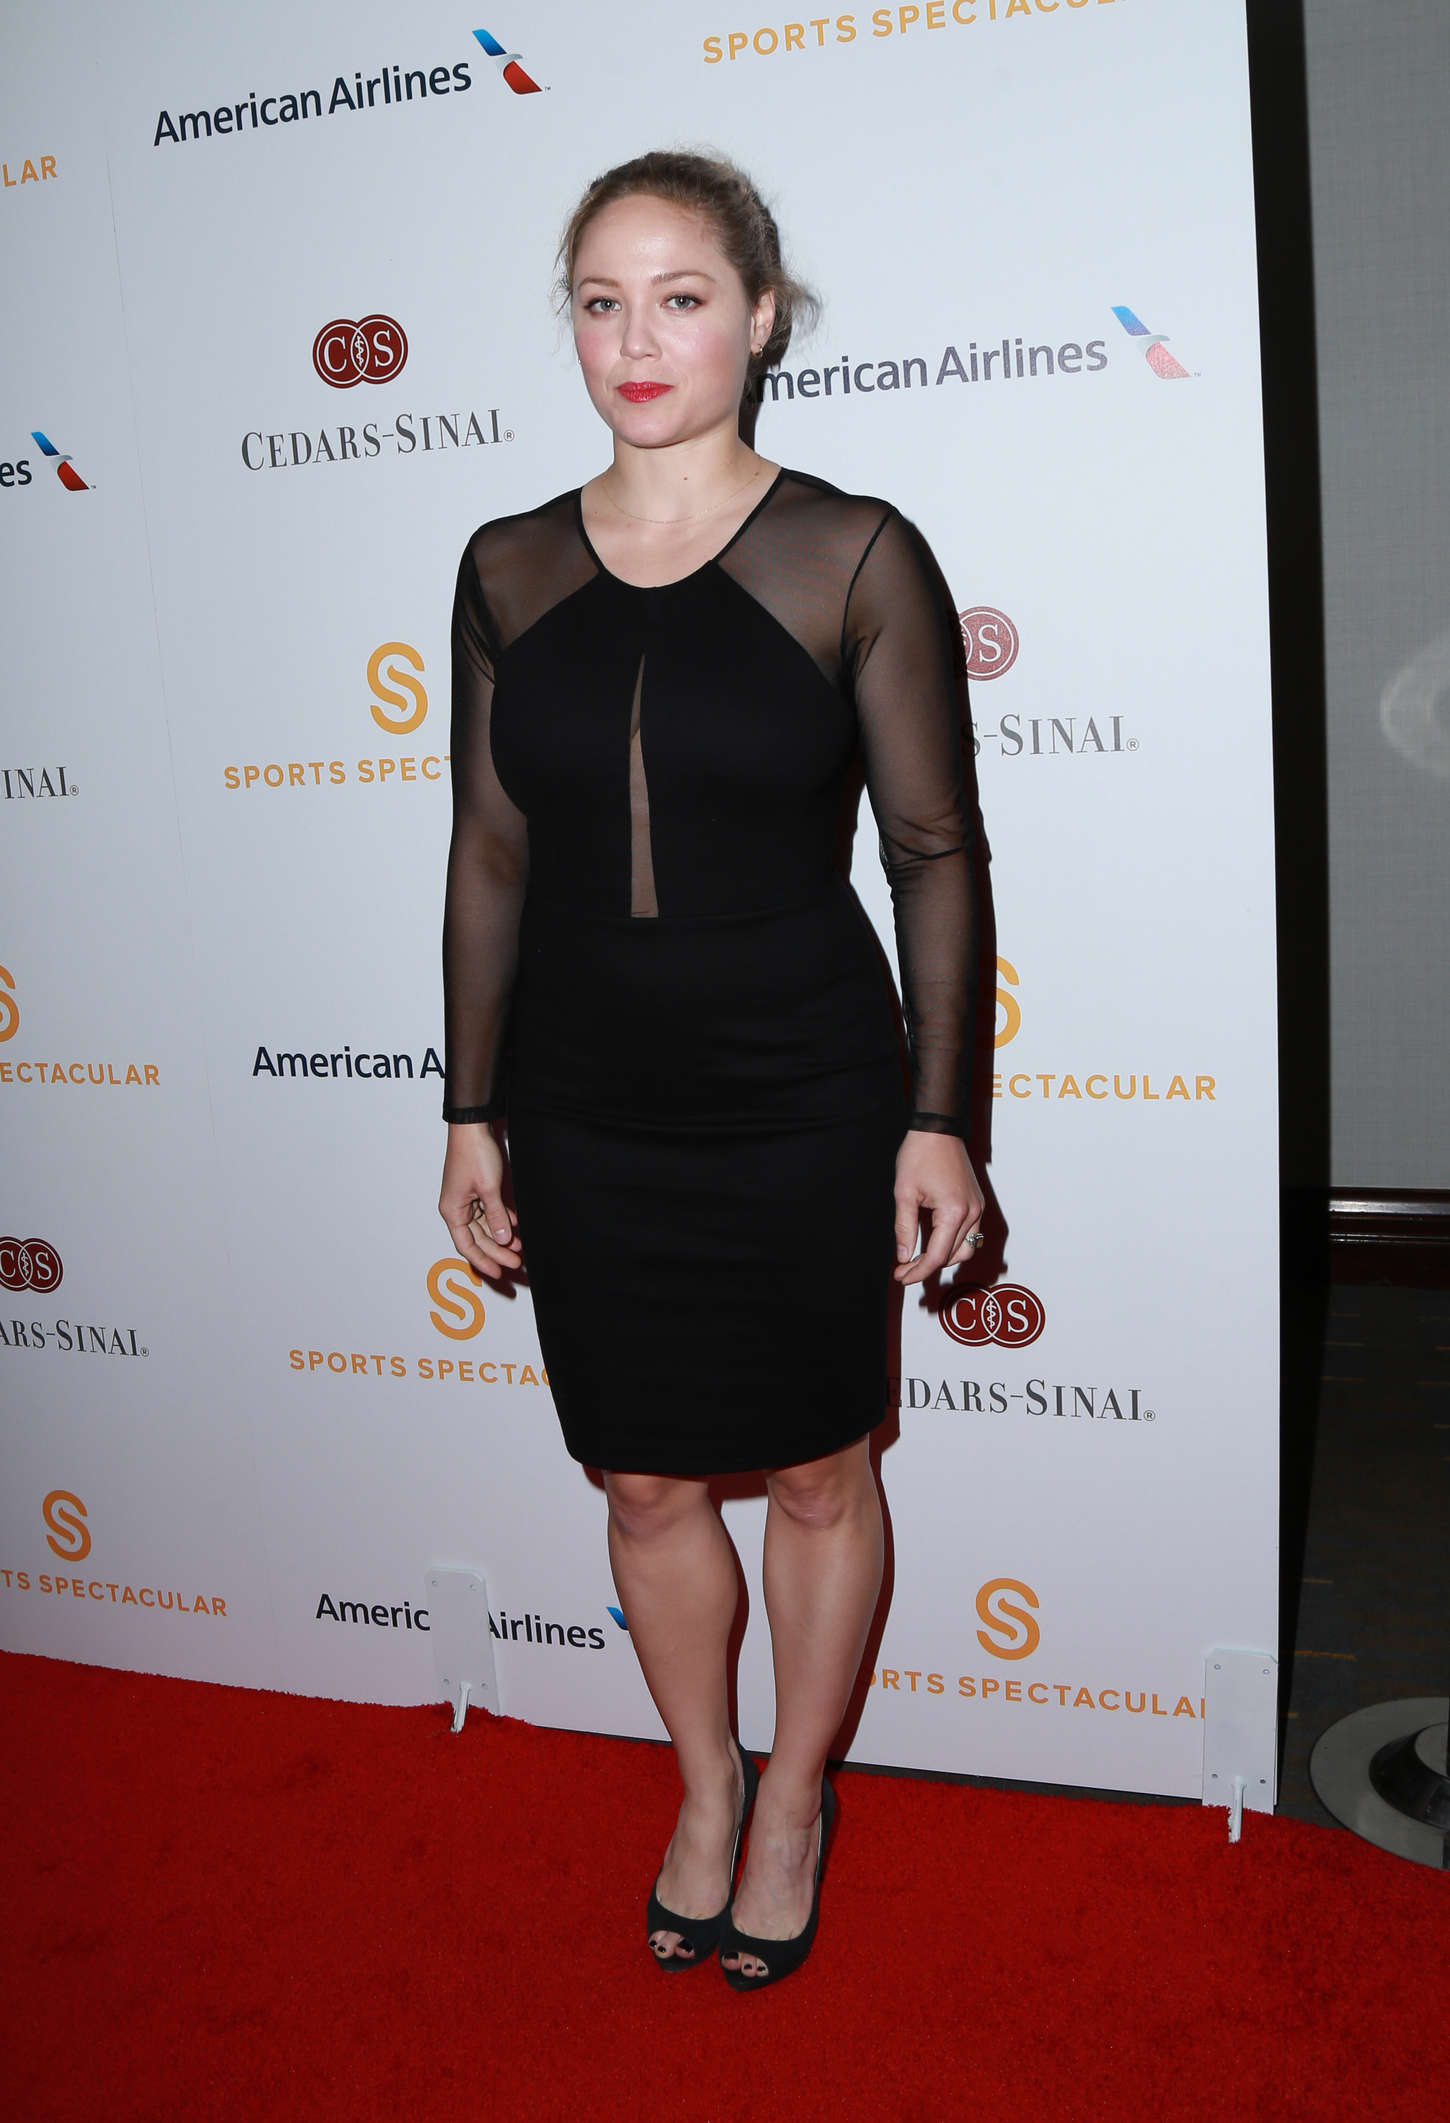 Erika Christensen Cedars-Sinai Sports Spectacular in Century City